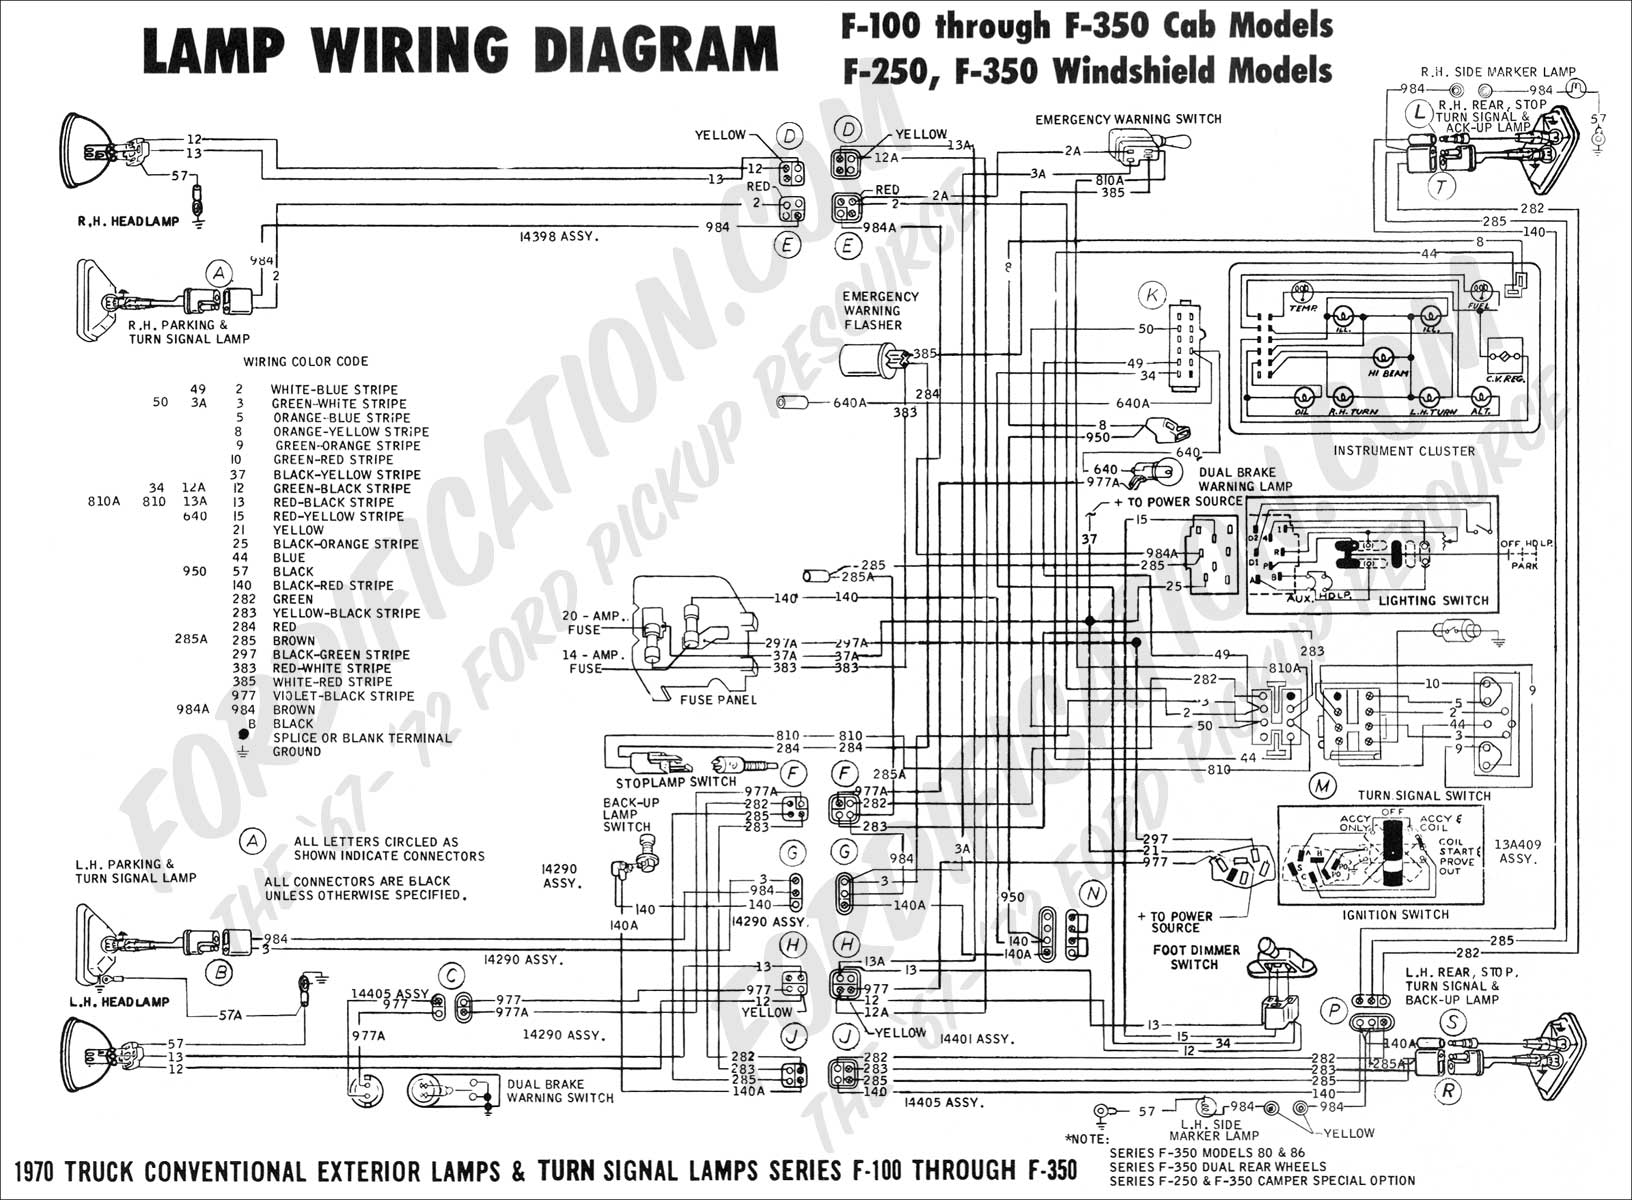 hight resolution of 1975 ford truck wiring diagrams just wiring data rh ag skiphire co uk 1975 dodge w100